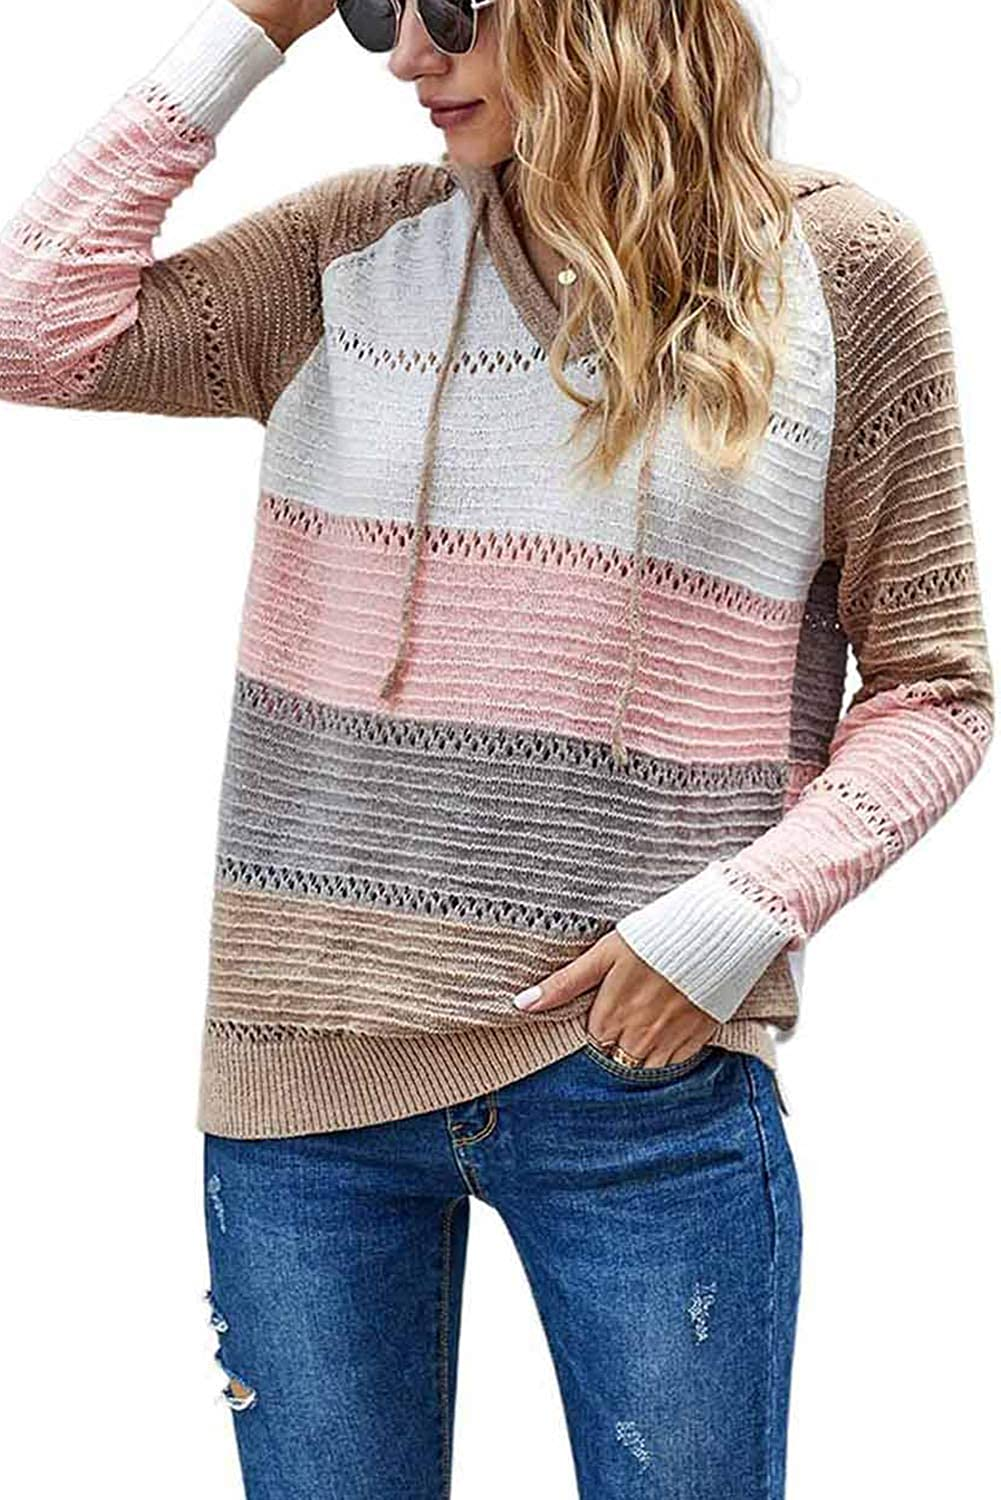 GOLDPKF Striped Color Block Hoodies for Womens Long Sleeve Pullover Sweatshirts